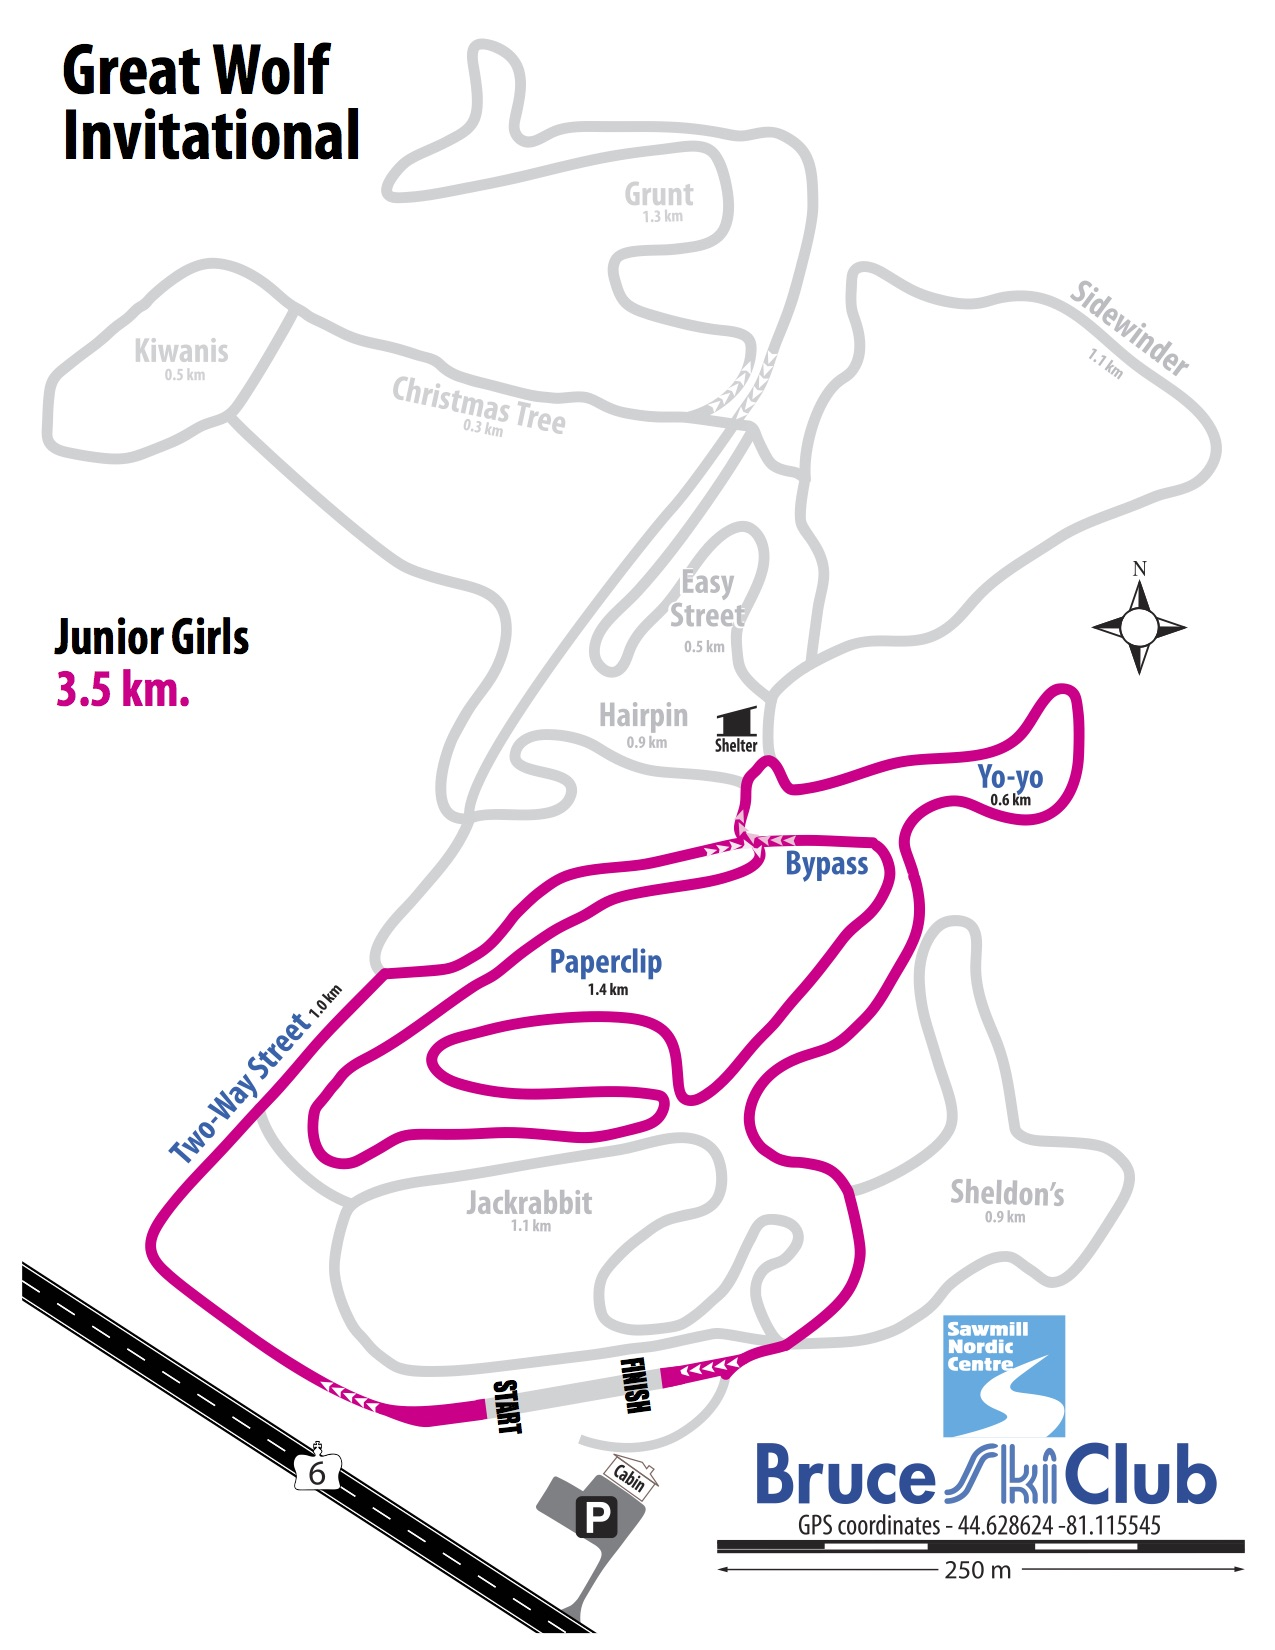 Great Wolf Invitational Cross-Country Ski Race, Hepworth, Ontario - Map: Junior Girls